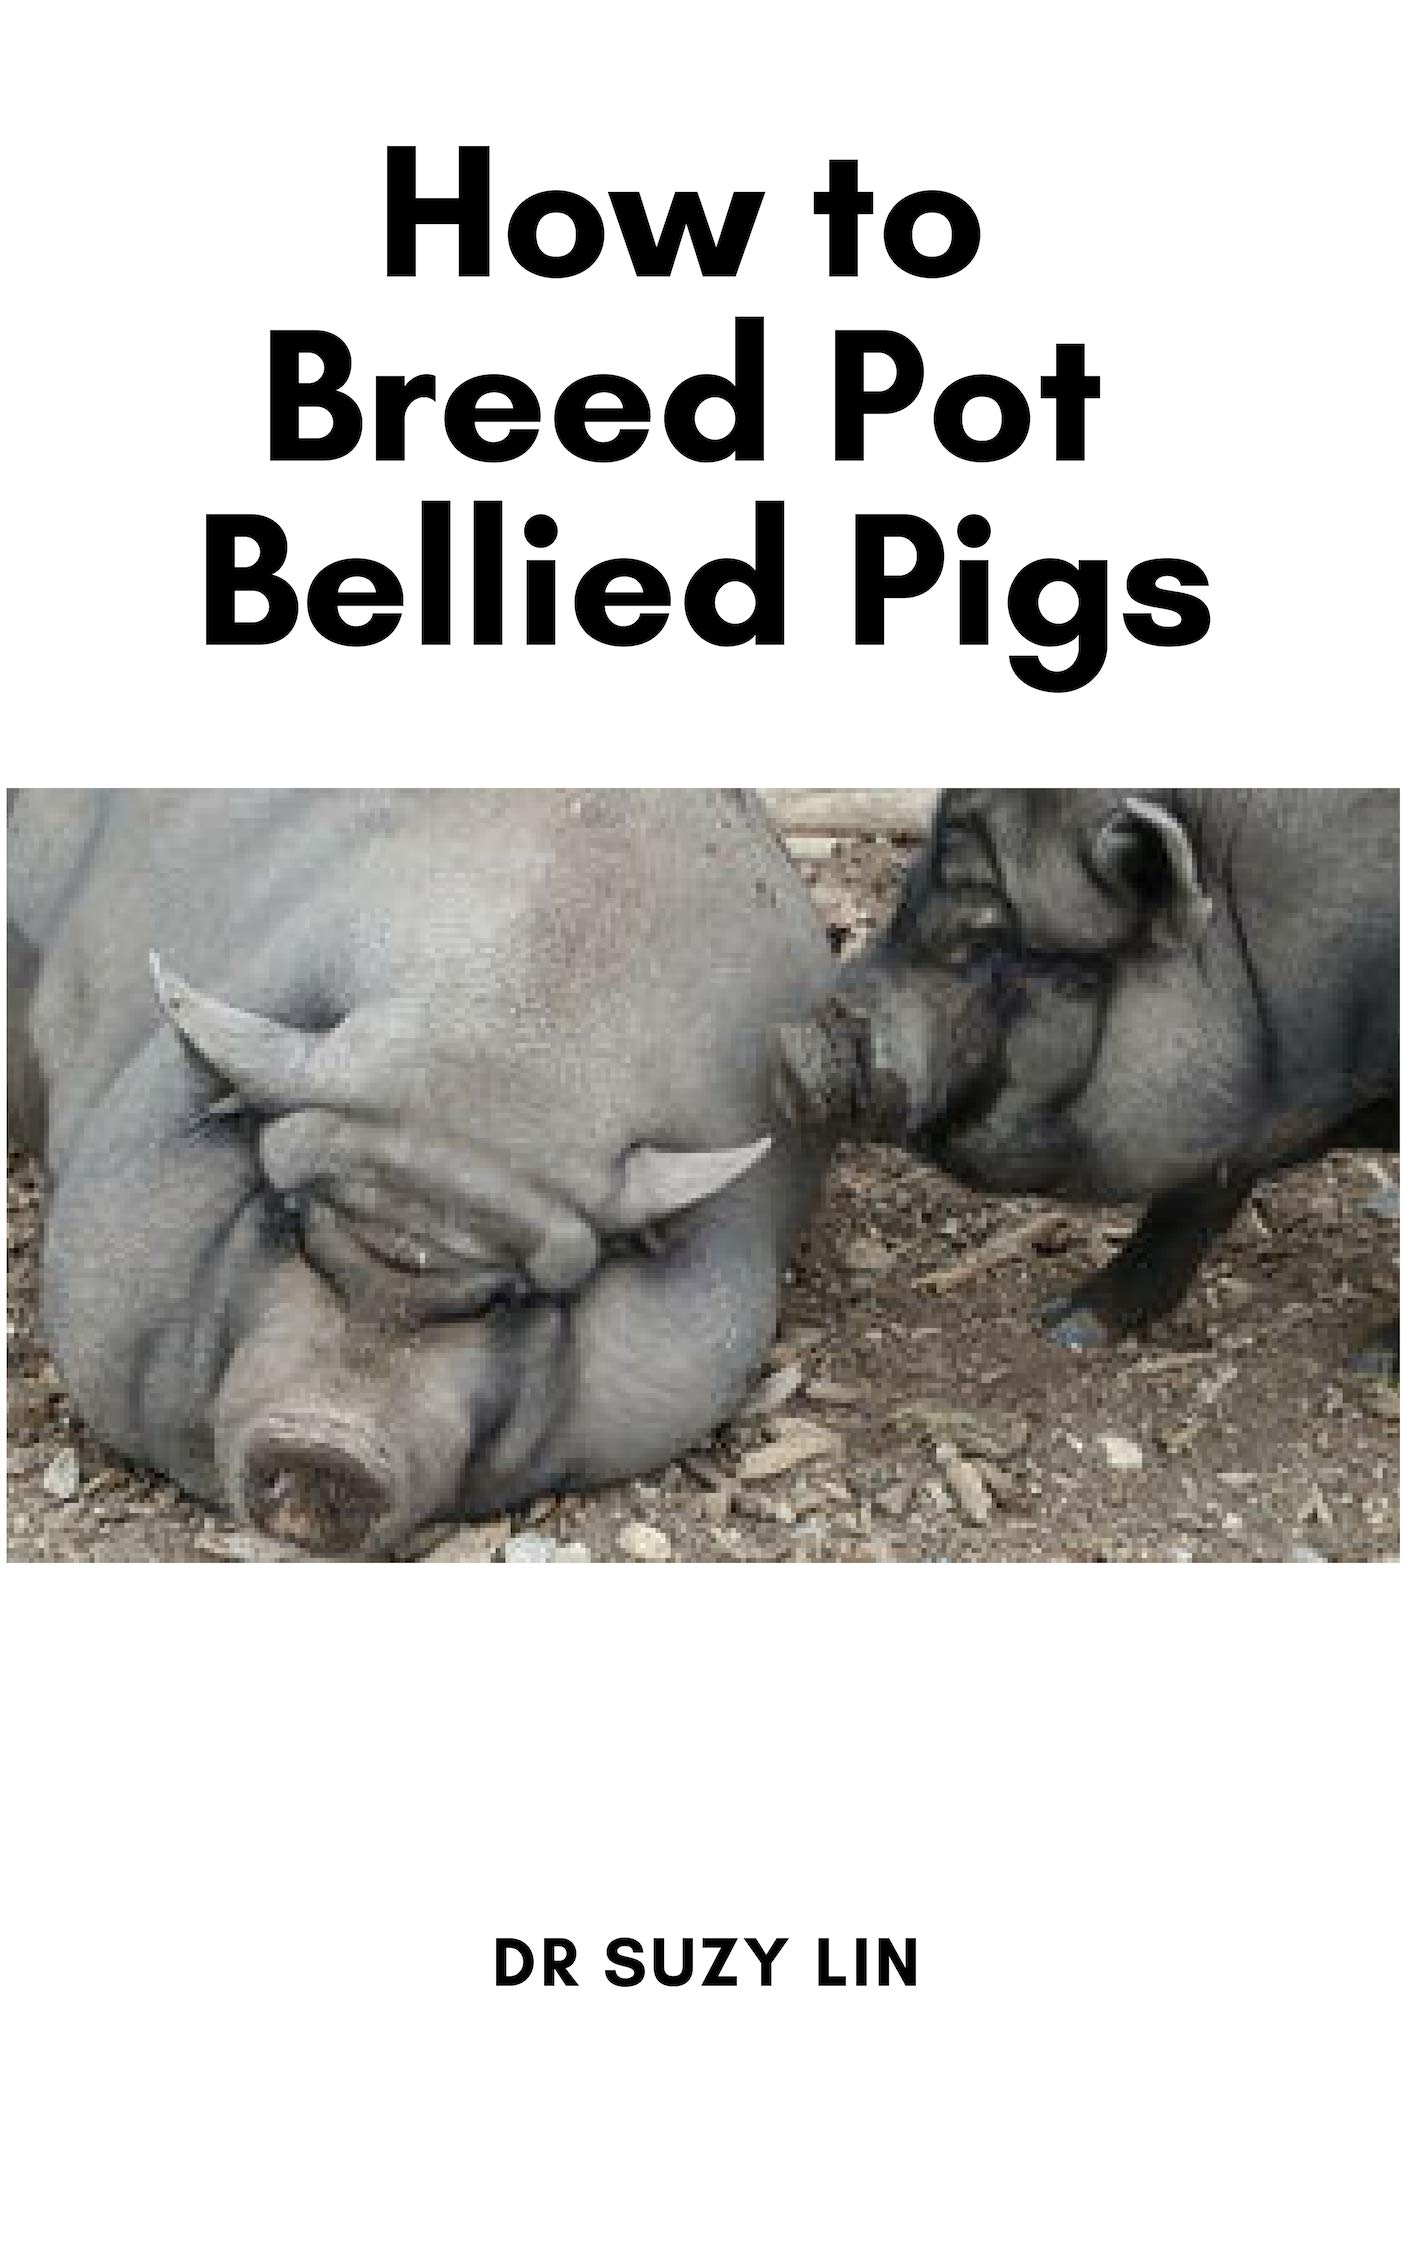 How to Breed Pot Bellied Pigs